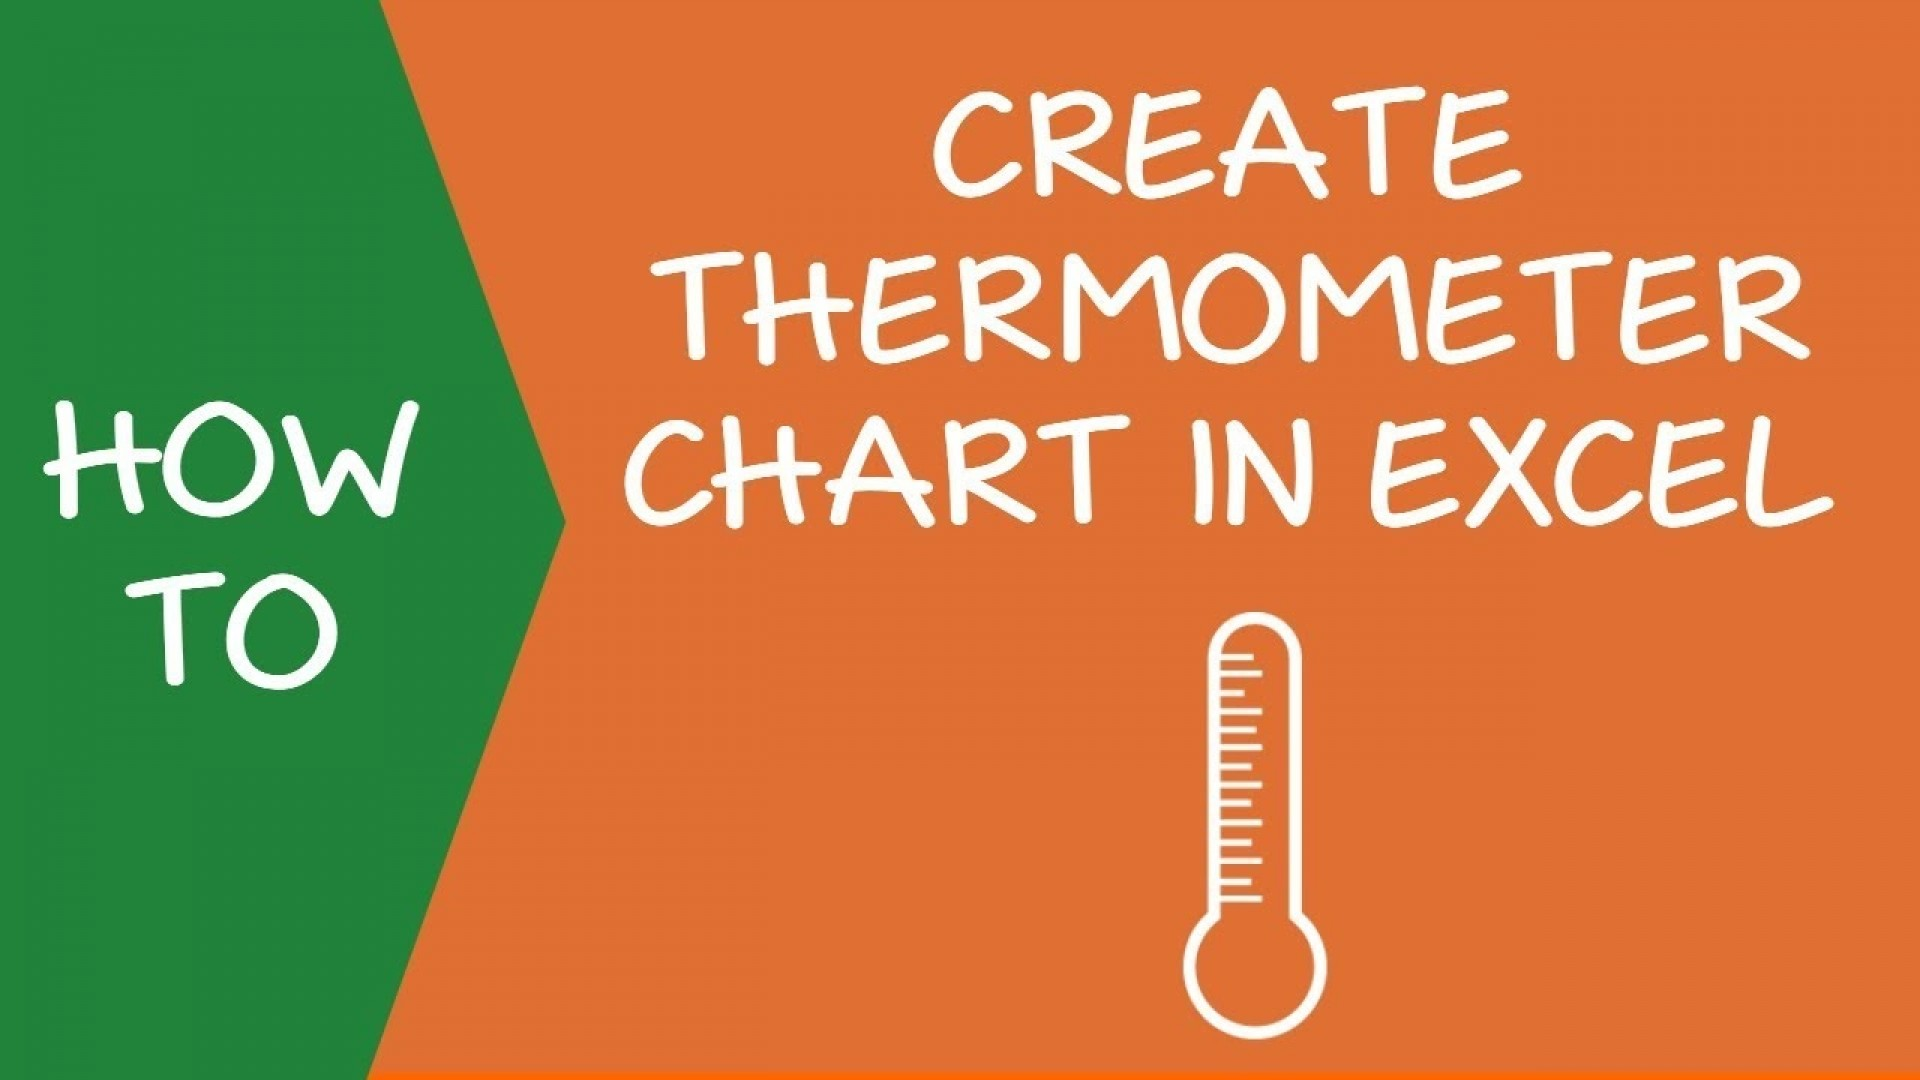 005 Stunning Goal Thermometer Template Excel Image  Chart Download Free1920